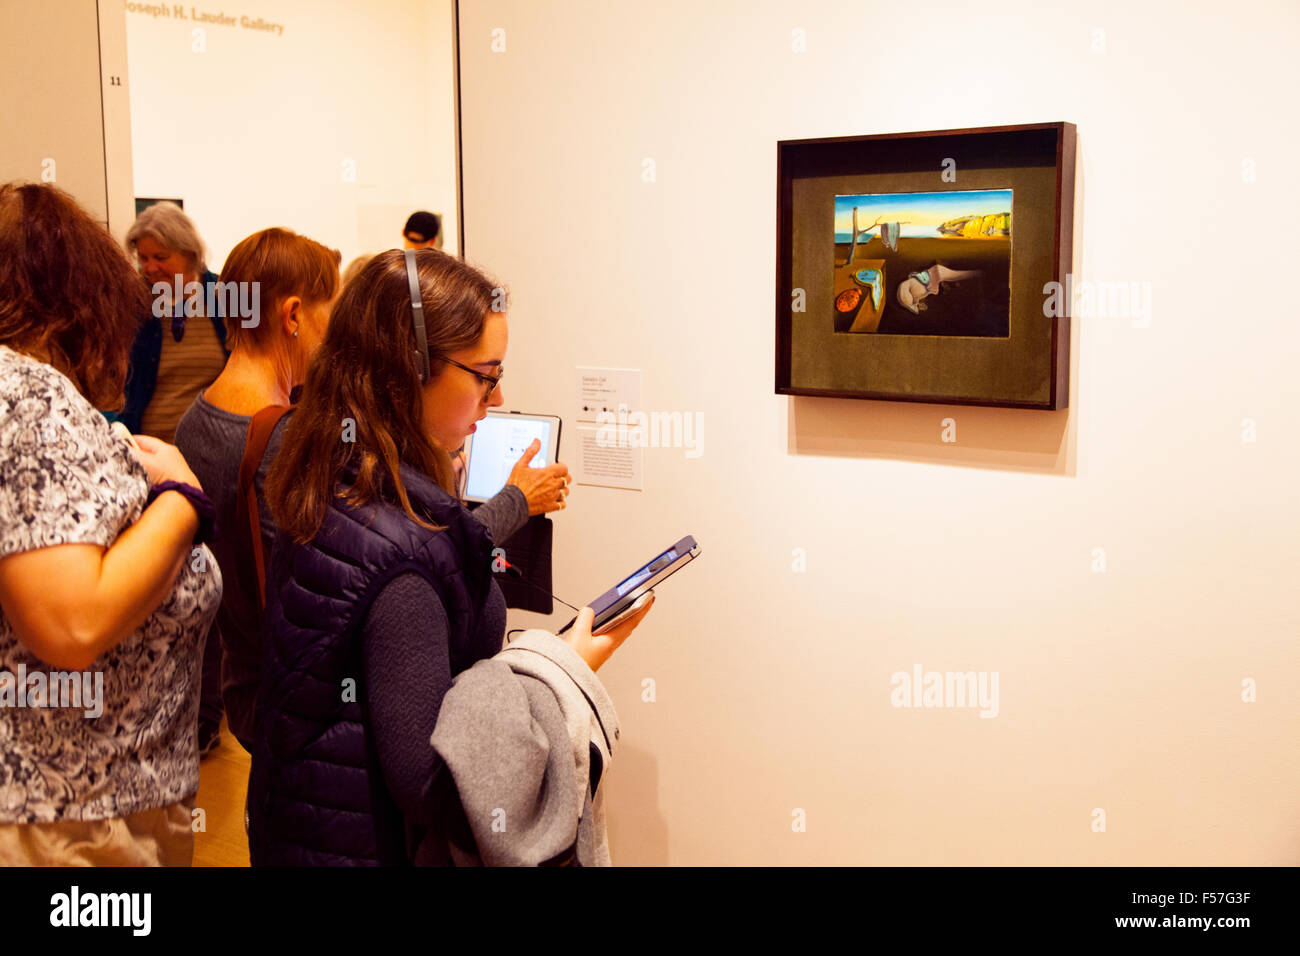 Salvador Dali, The Persistence of Memory (1931) ,MoMA The Museum of Modern Art, New York city, United States of - Stock Image